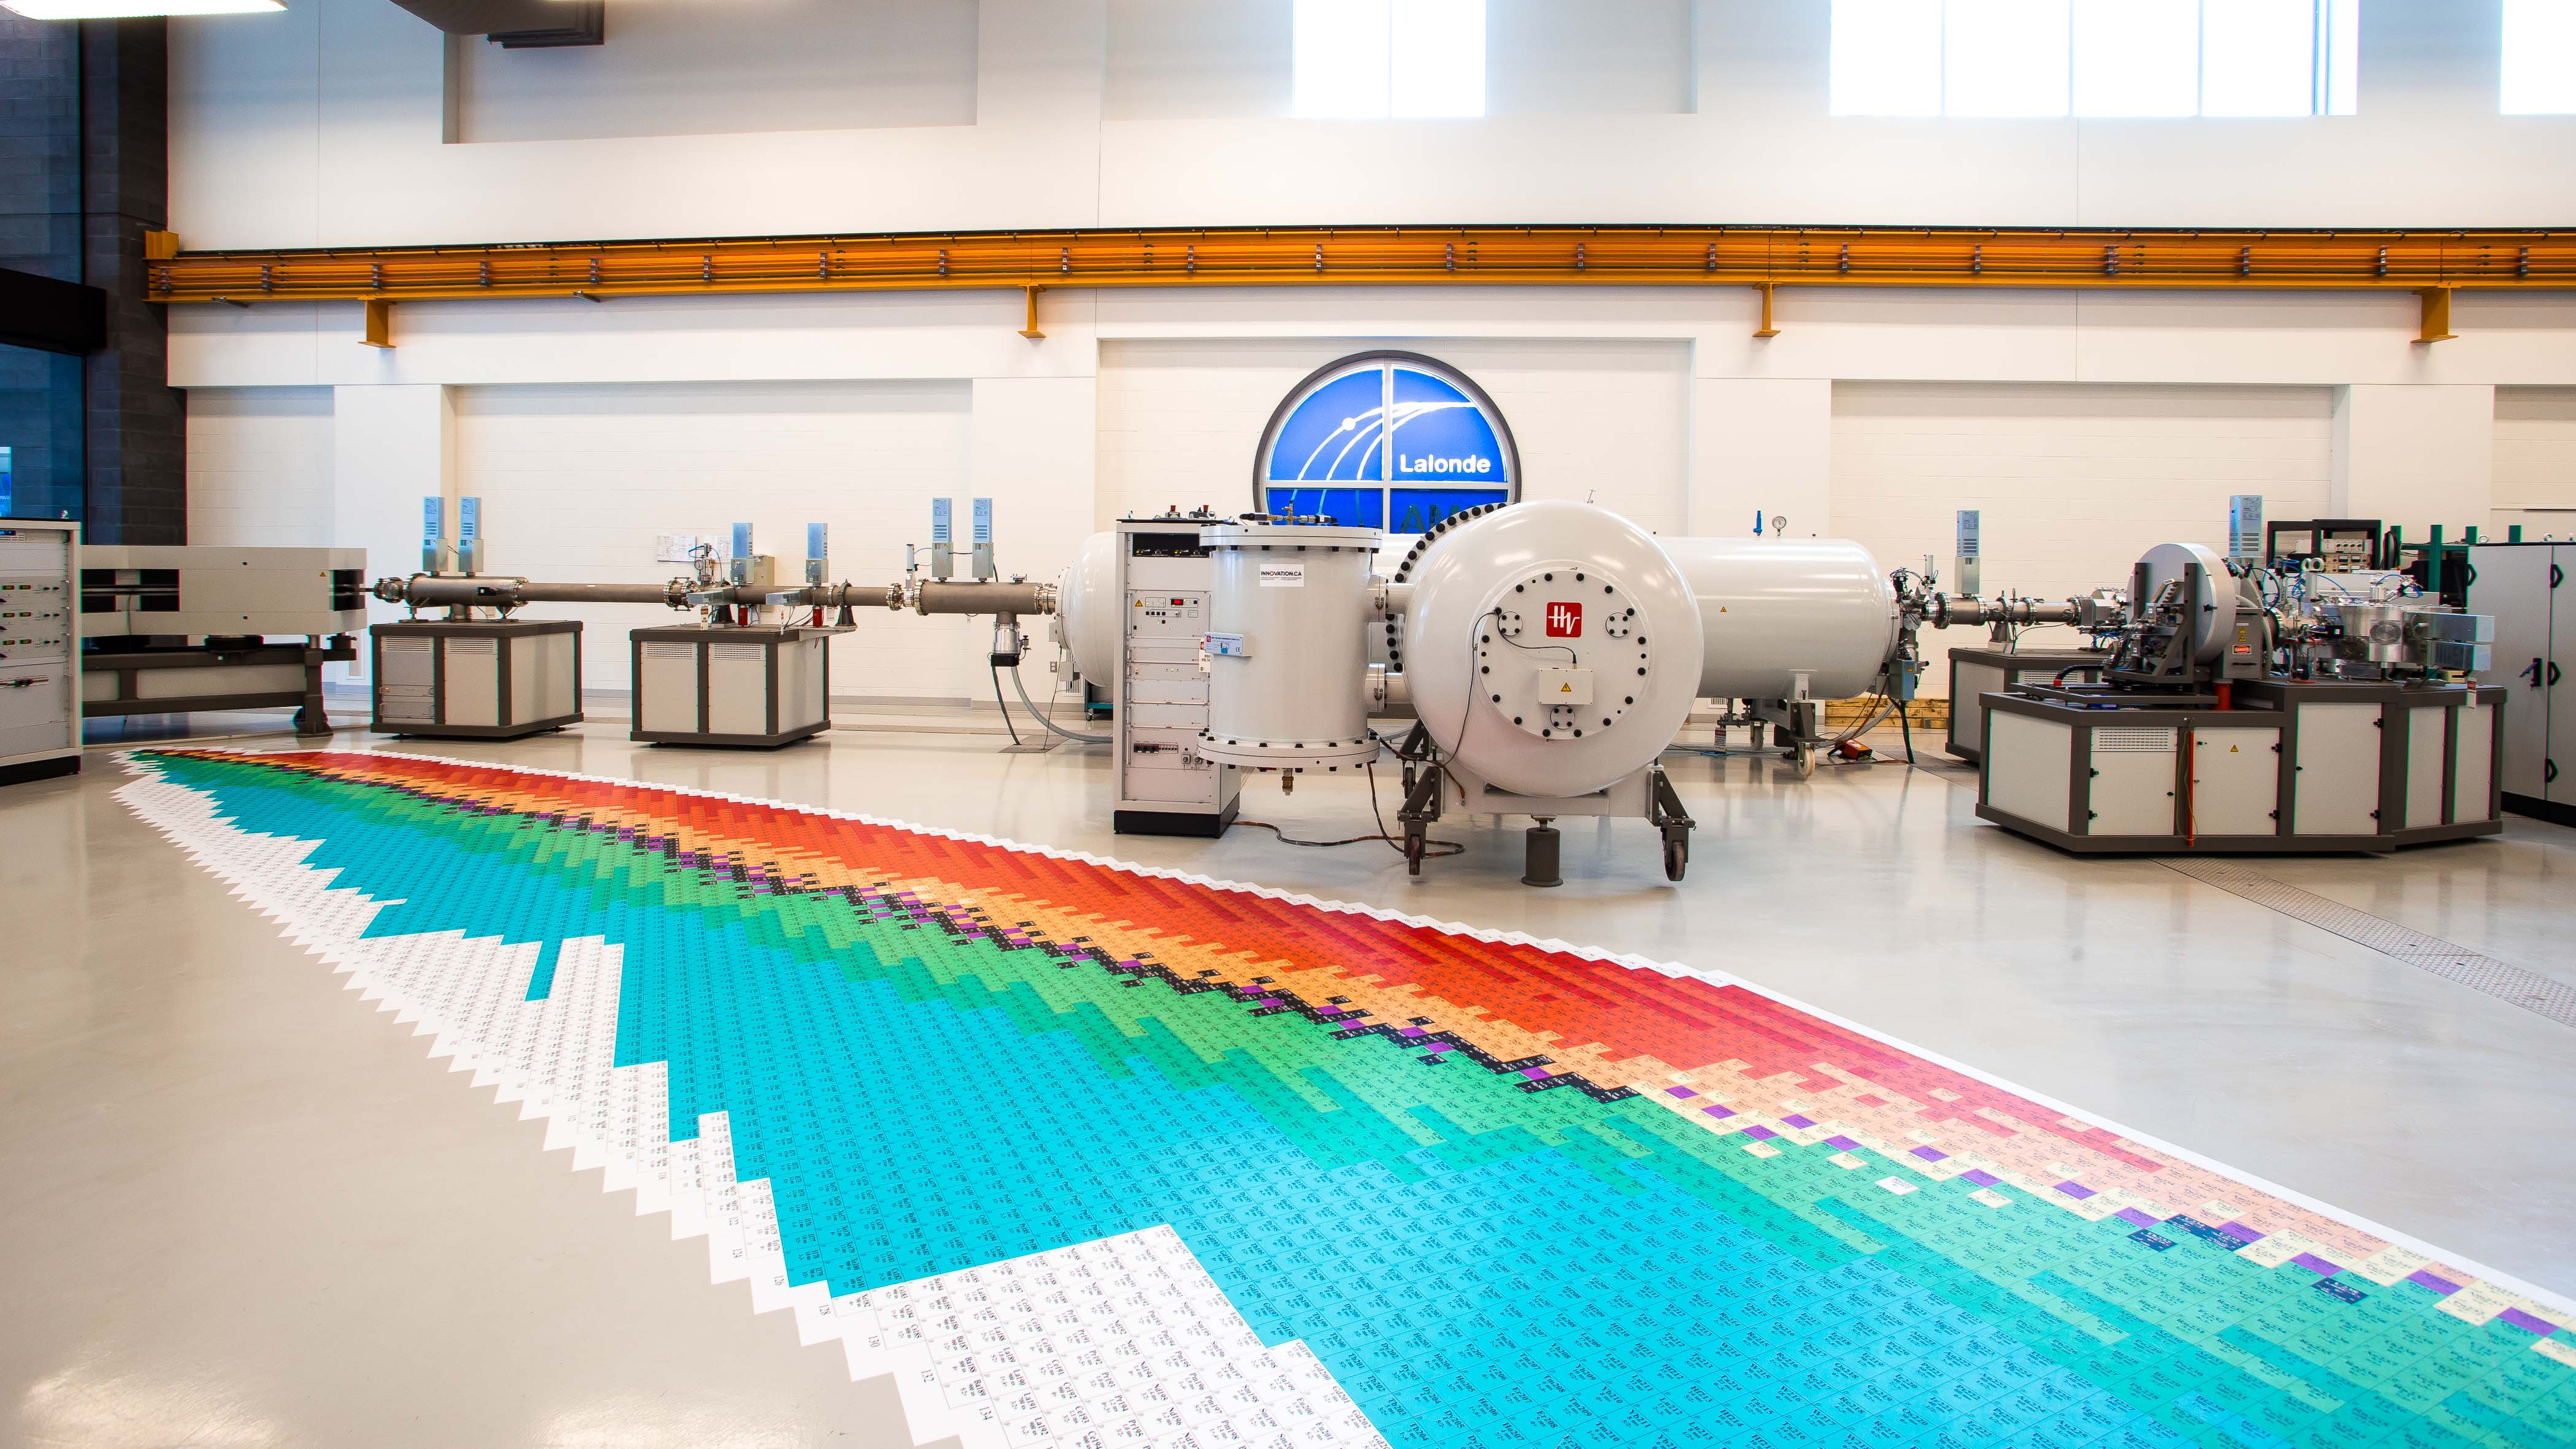 Interior of a laboratory showing an accelerator mass spectrometer and a gigantic periodic table printed on the ground